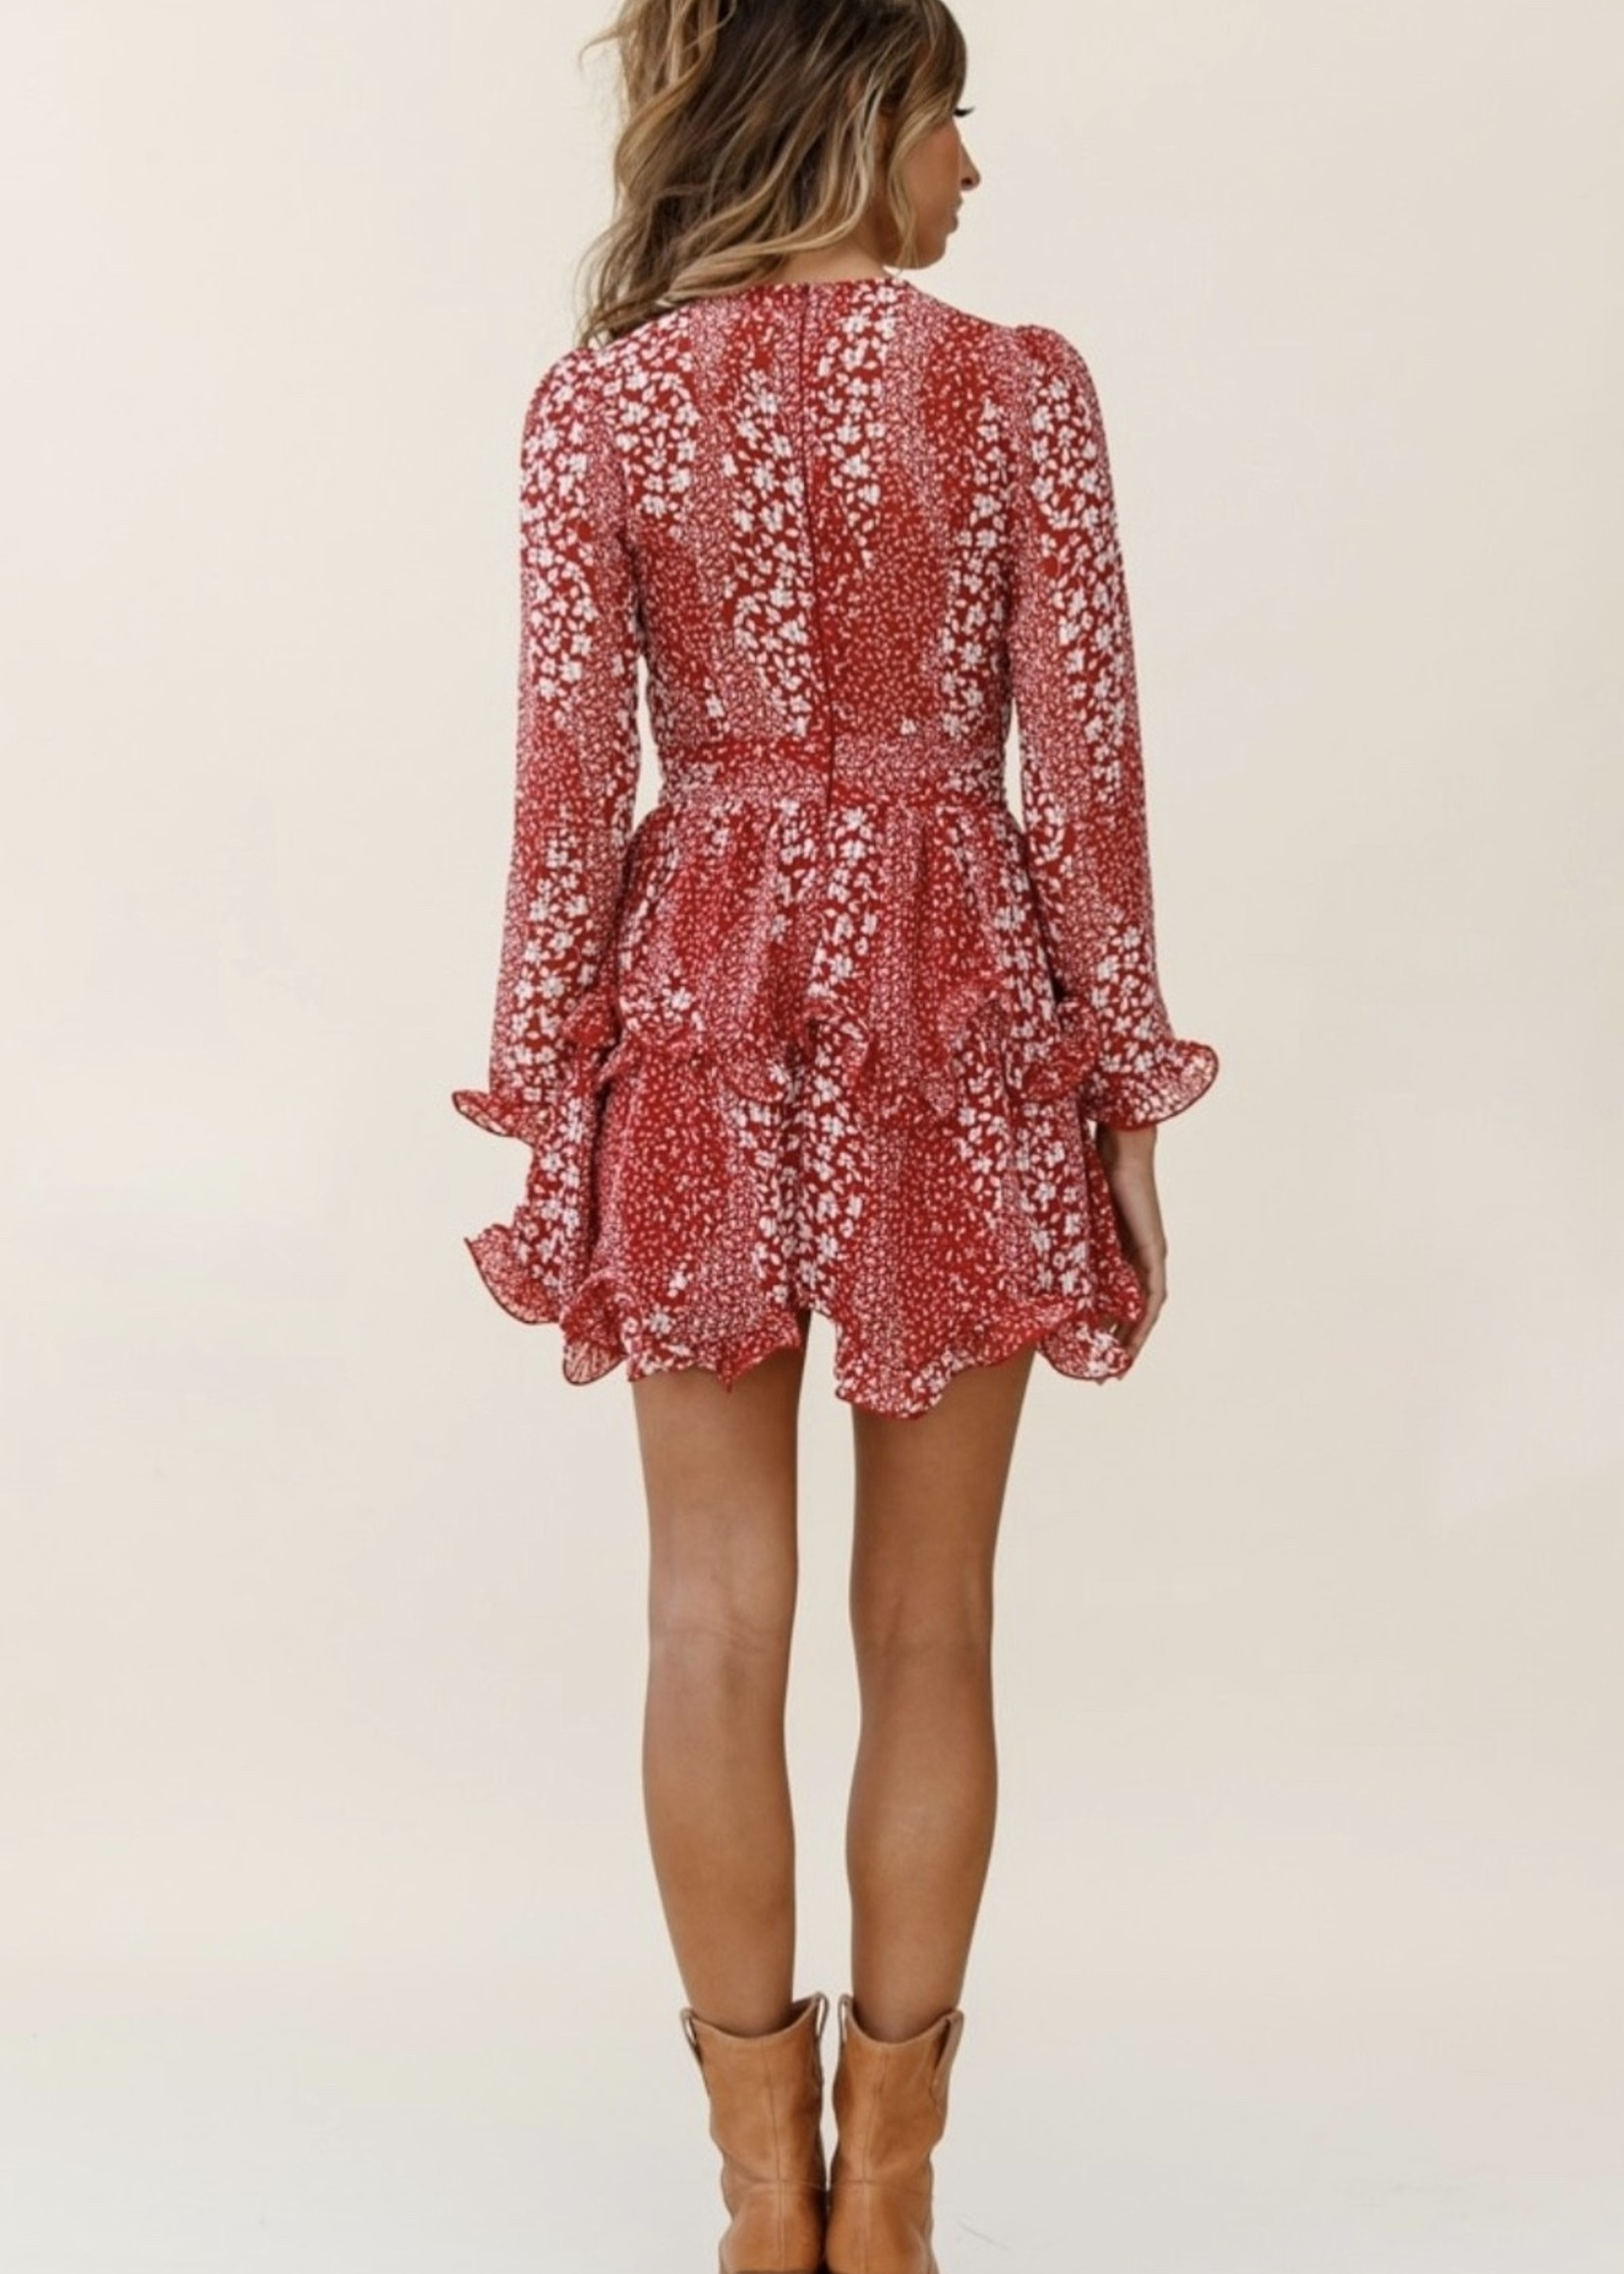 LeBLANC finds Floral Print L/S Dress